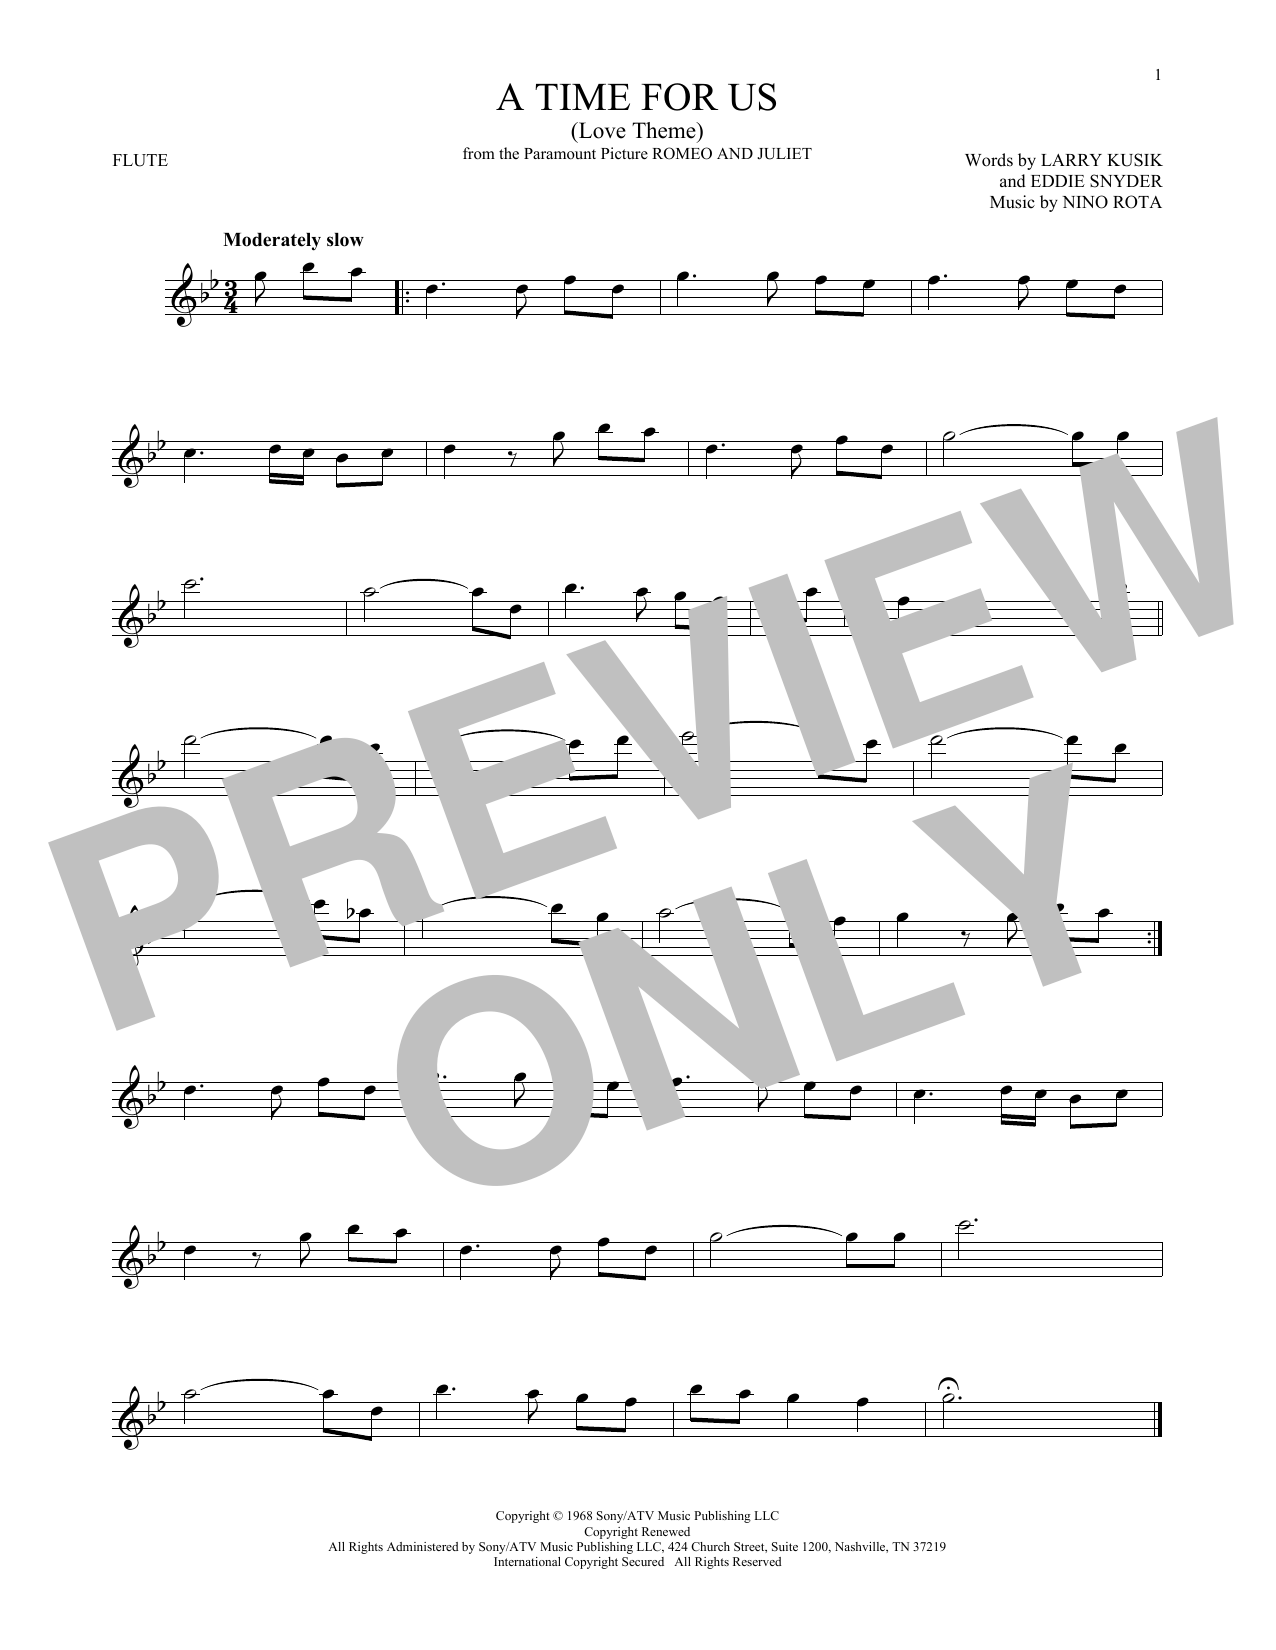 A Time For Us (Love Theme) (Flute Solo)